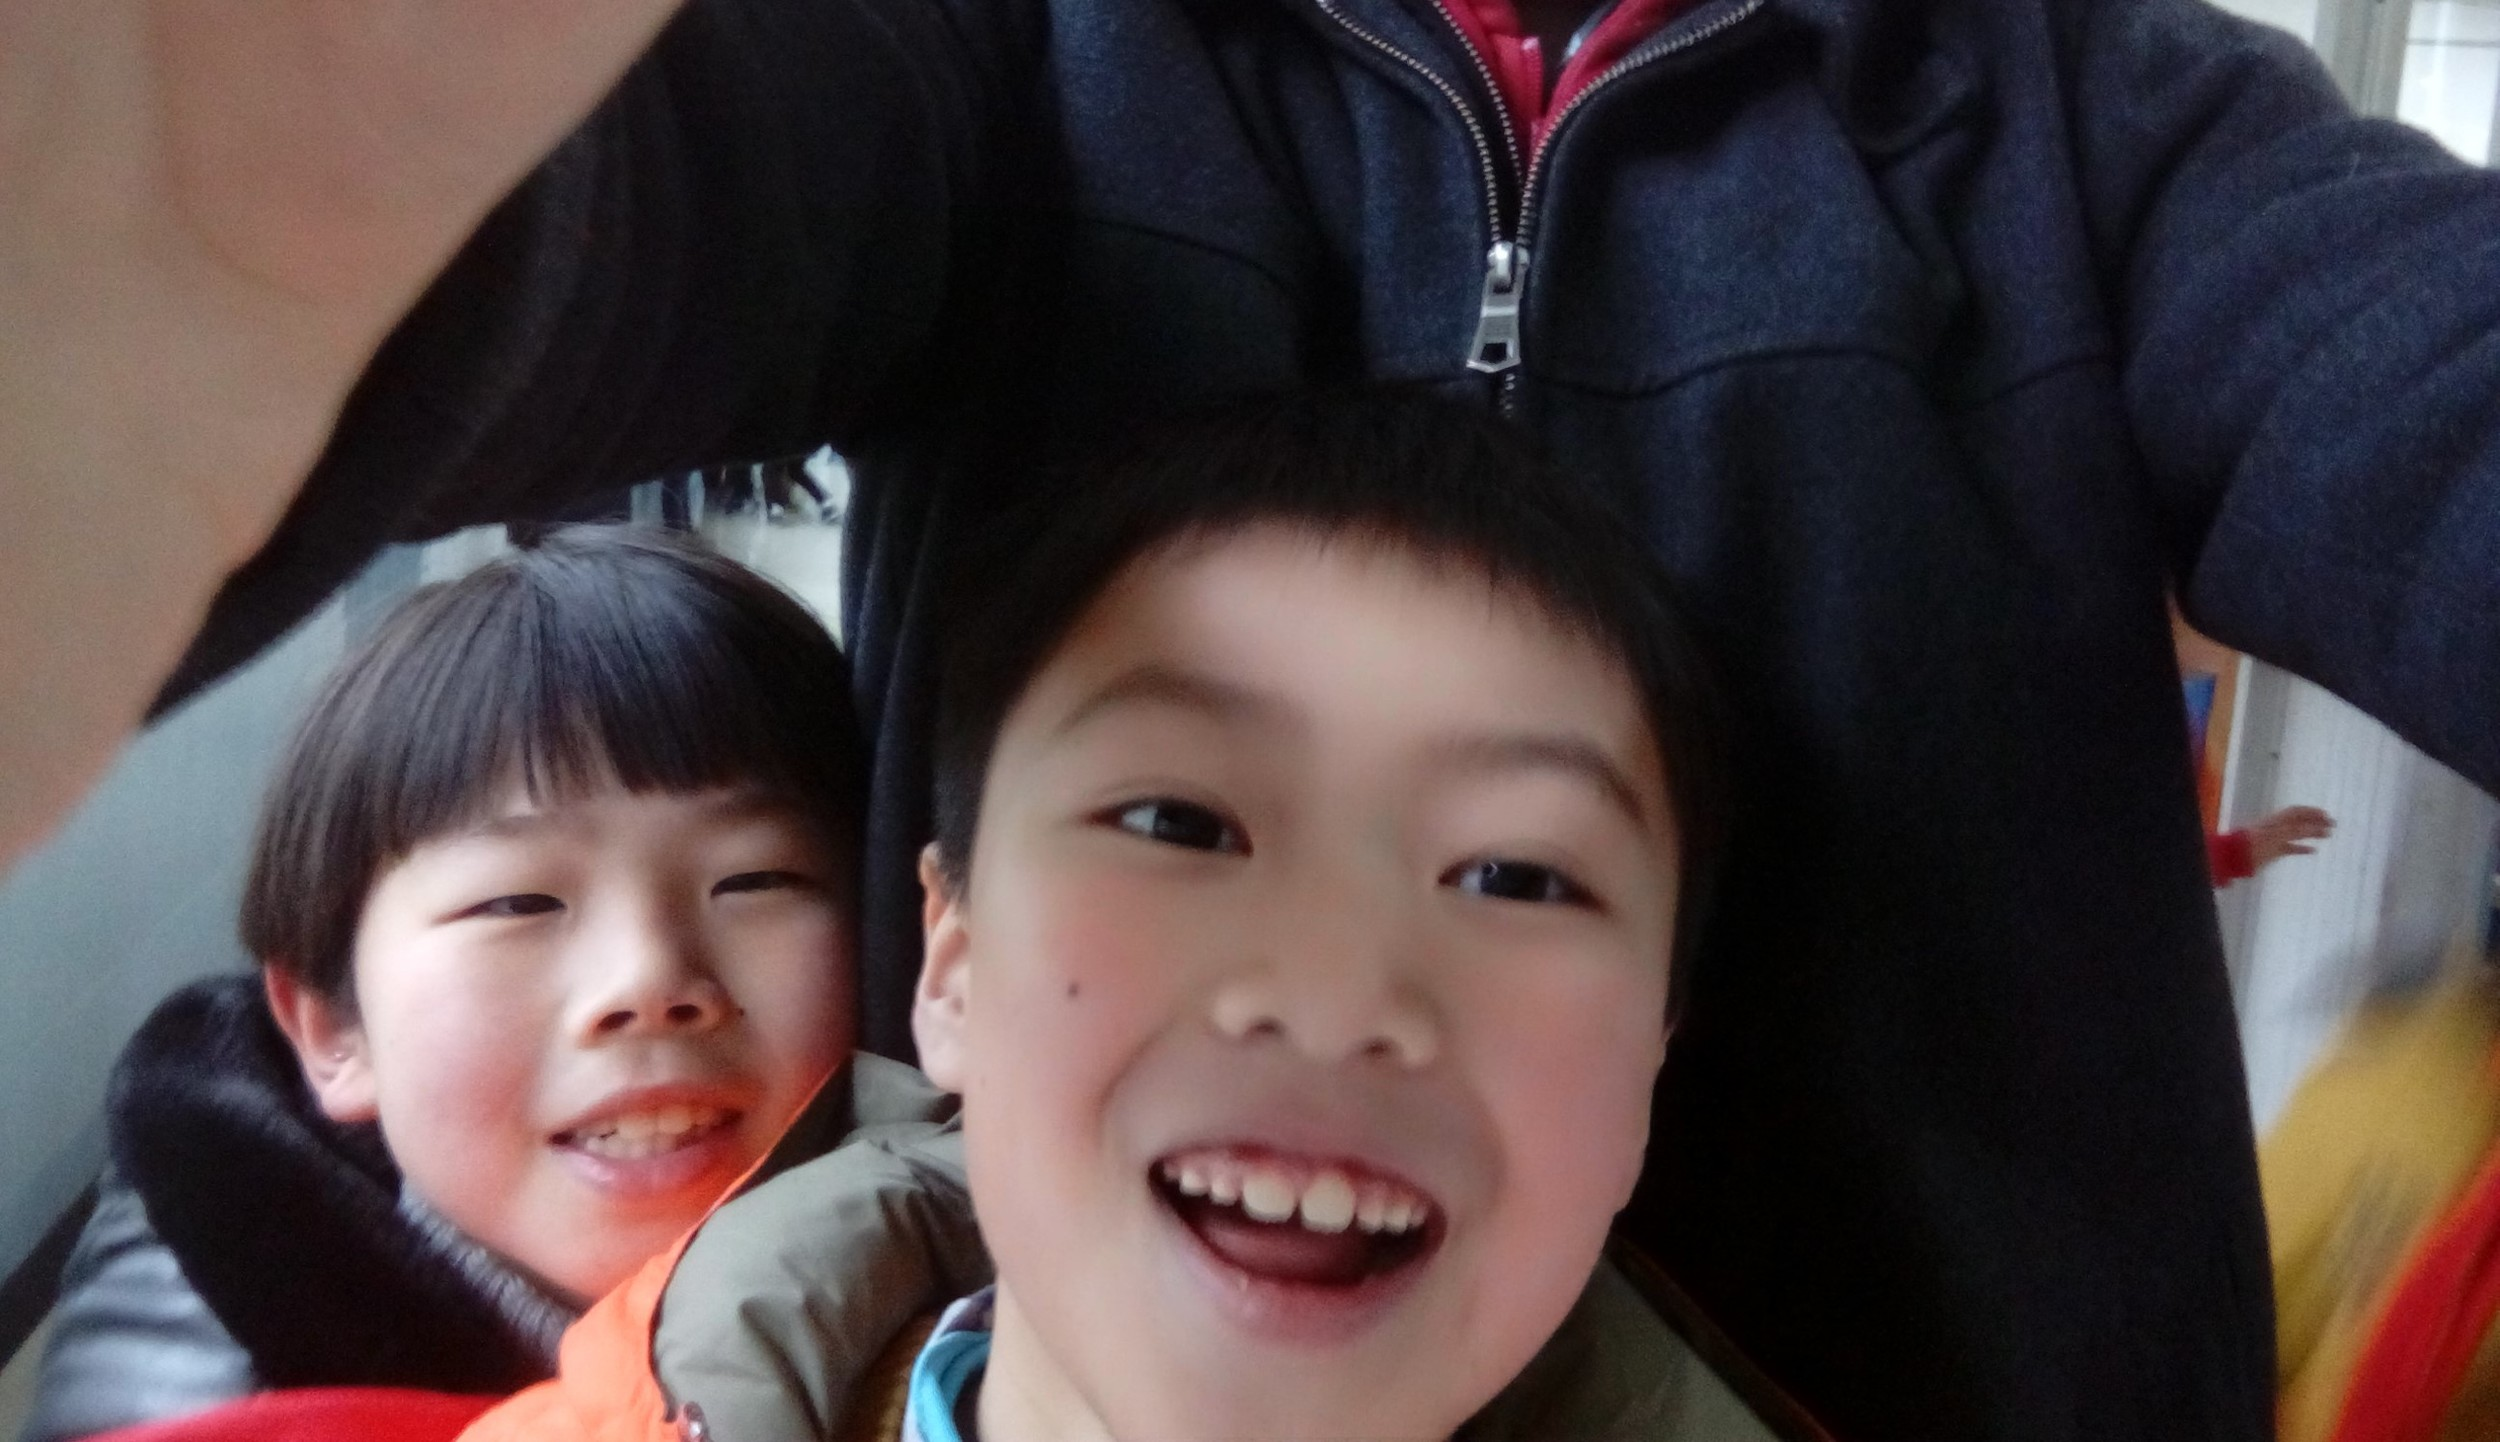 My students are too small to take proper selfies with!